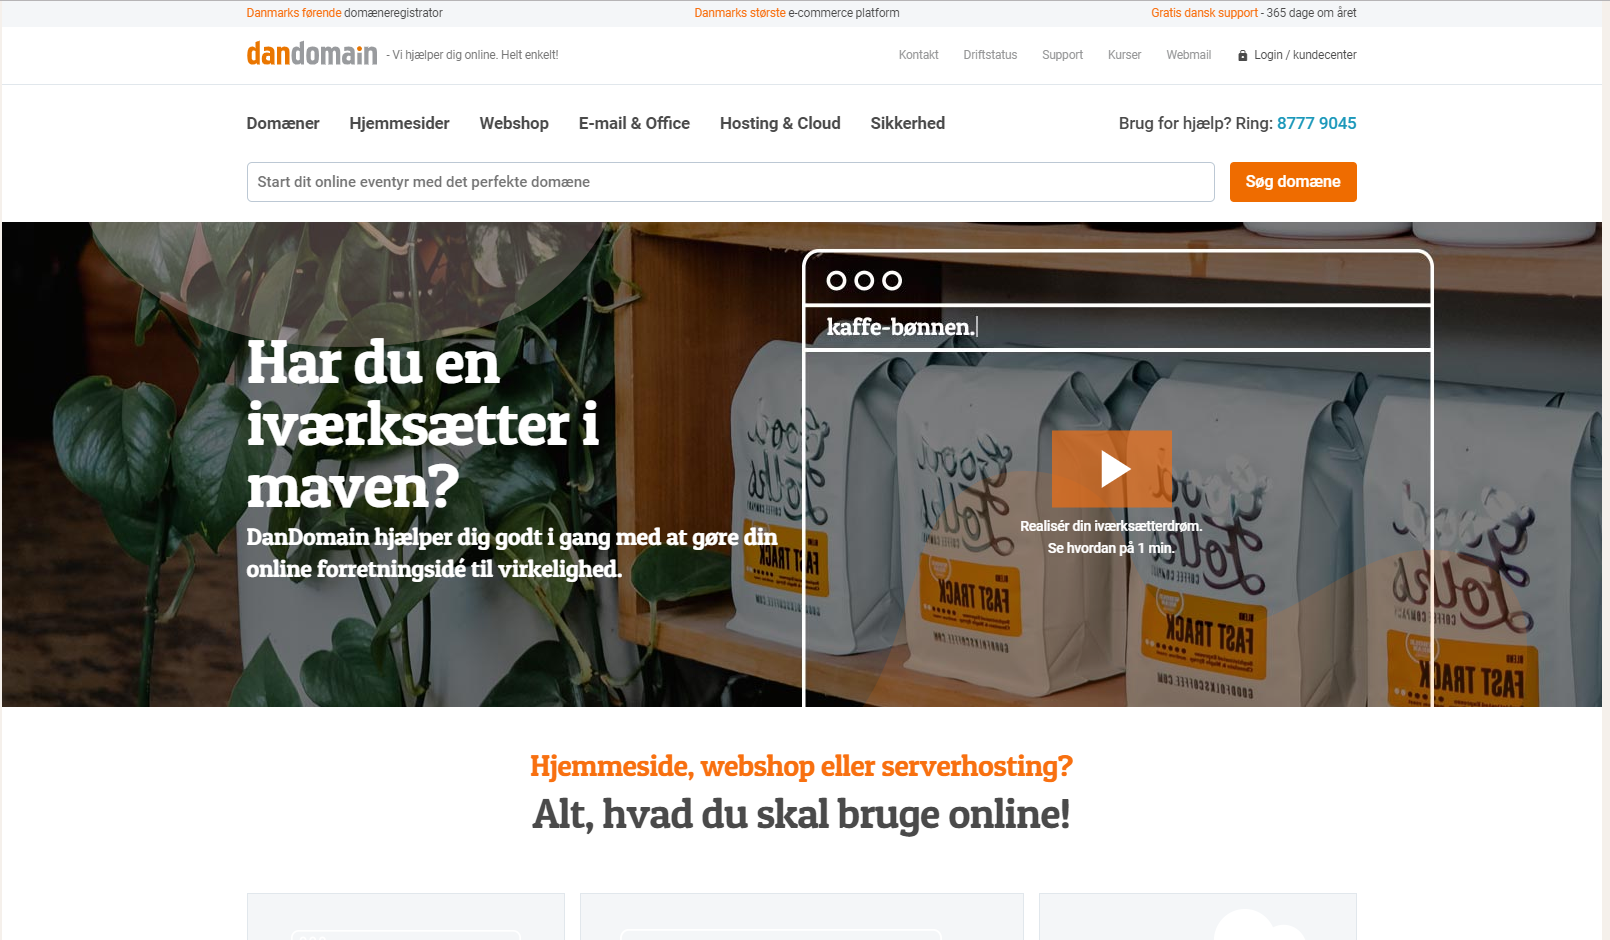 Dandomain webshop og hosting udbyder